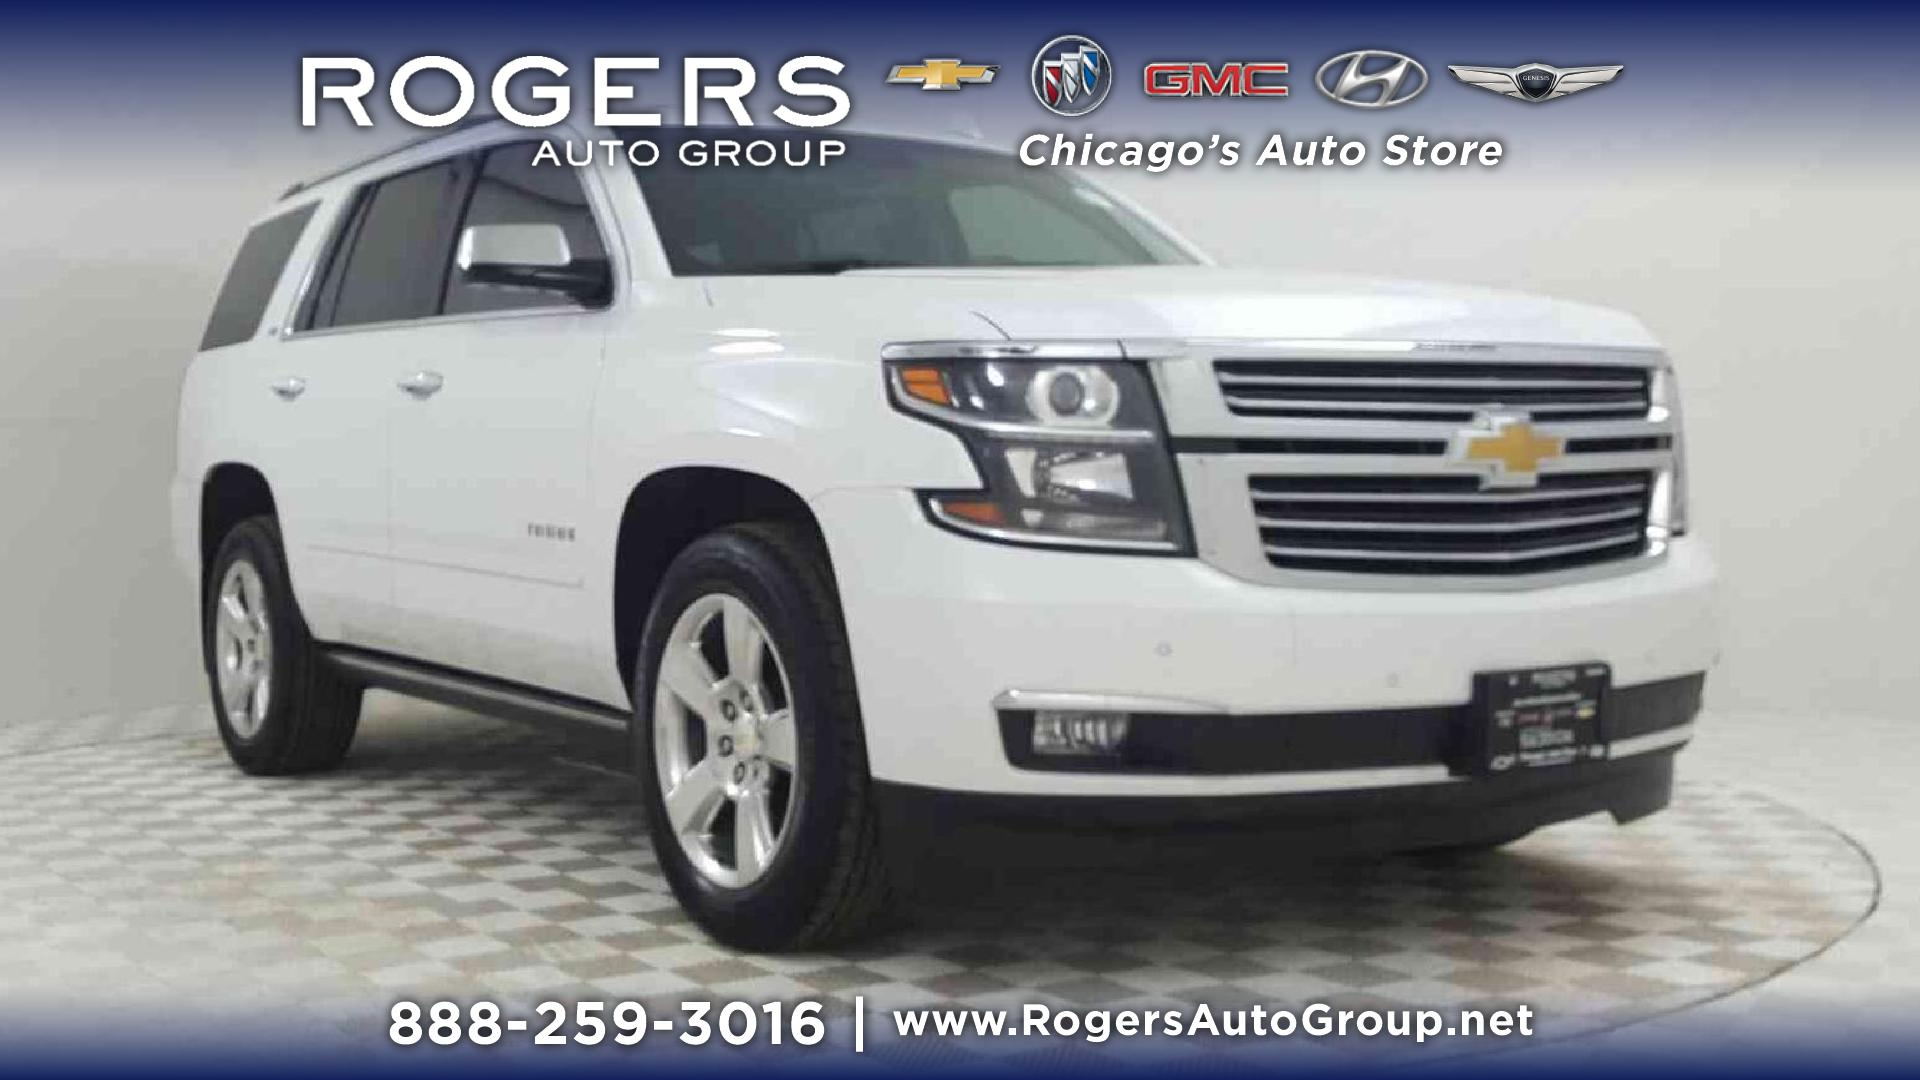 Group Vehicle Inventory Chicago Group Dealer In Chicago IL New - Chevrolet dealers in chicago